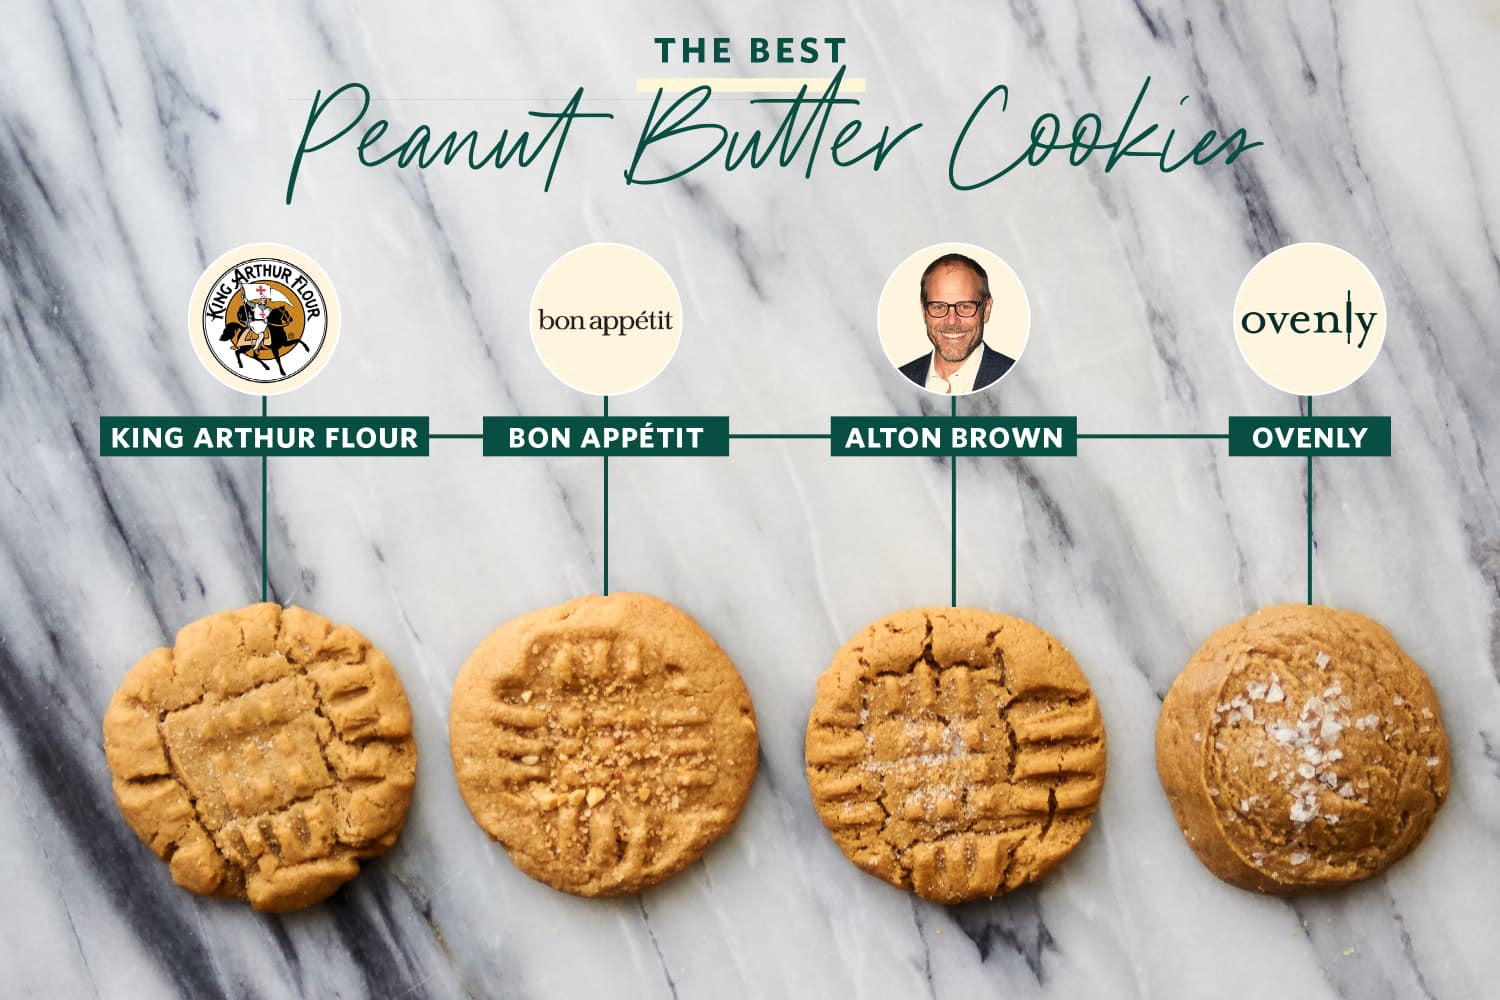 We Tested 4 Famous Peanut Butter Cookie Recipes and Found a Clear Winner